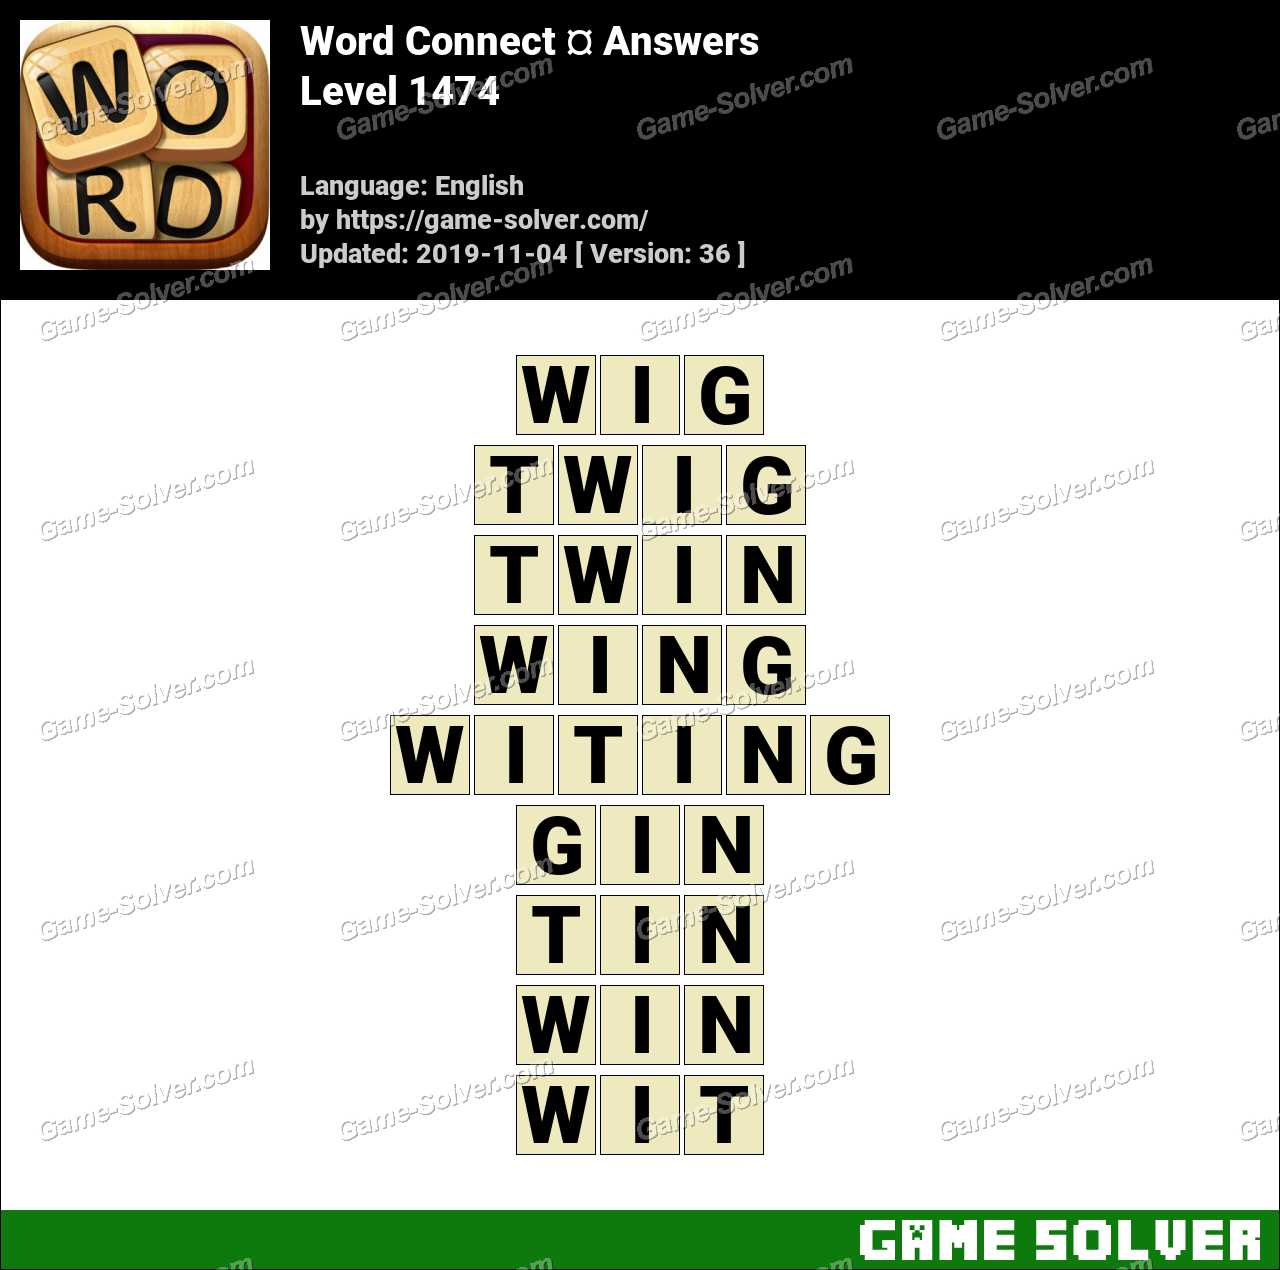 Word Connect Level 1474 Answers